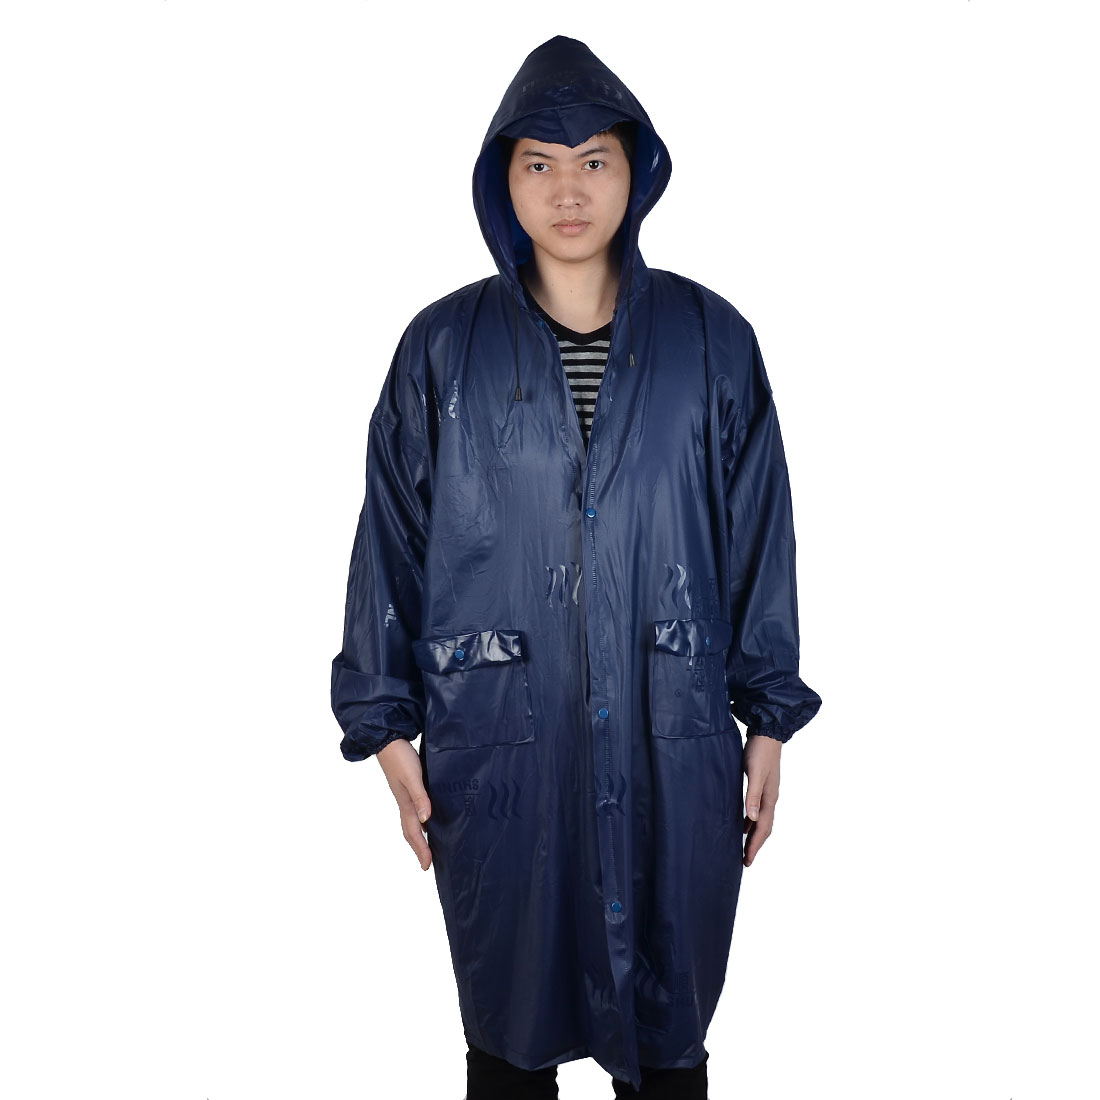 Outdoor Farmer Water Resistant Raincoat Rain Jacket Poncho Coat Dark Blue